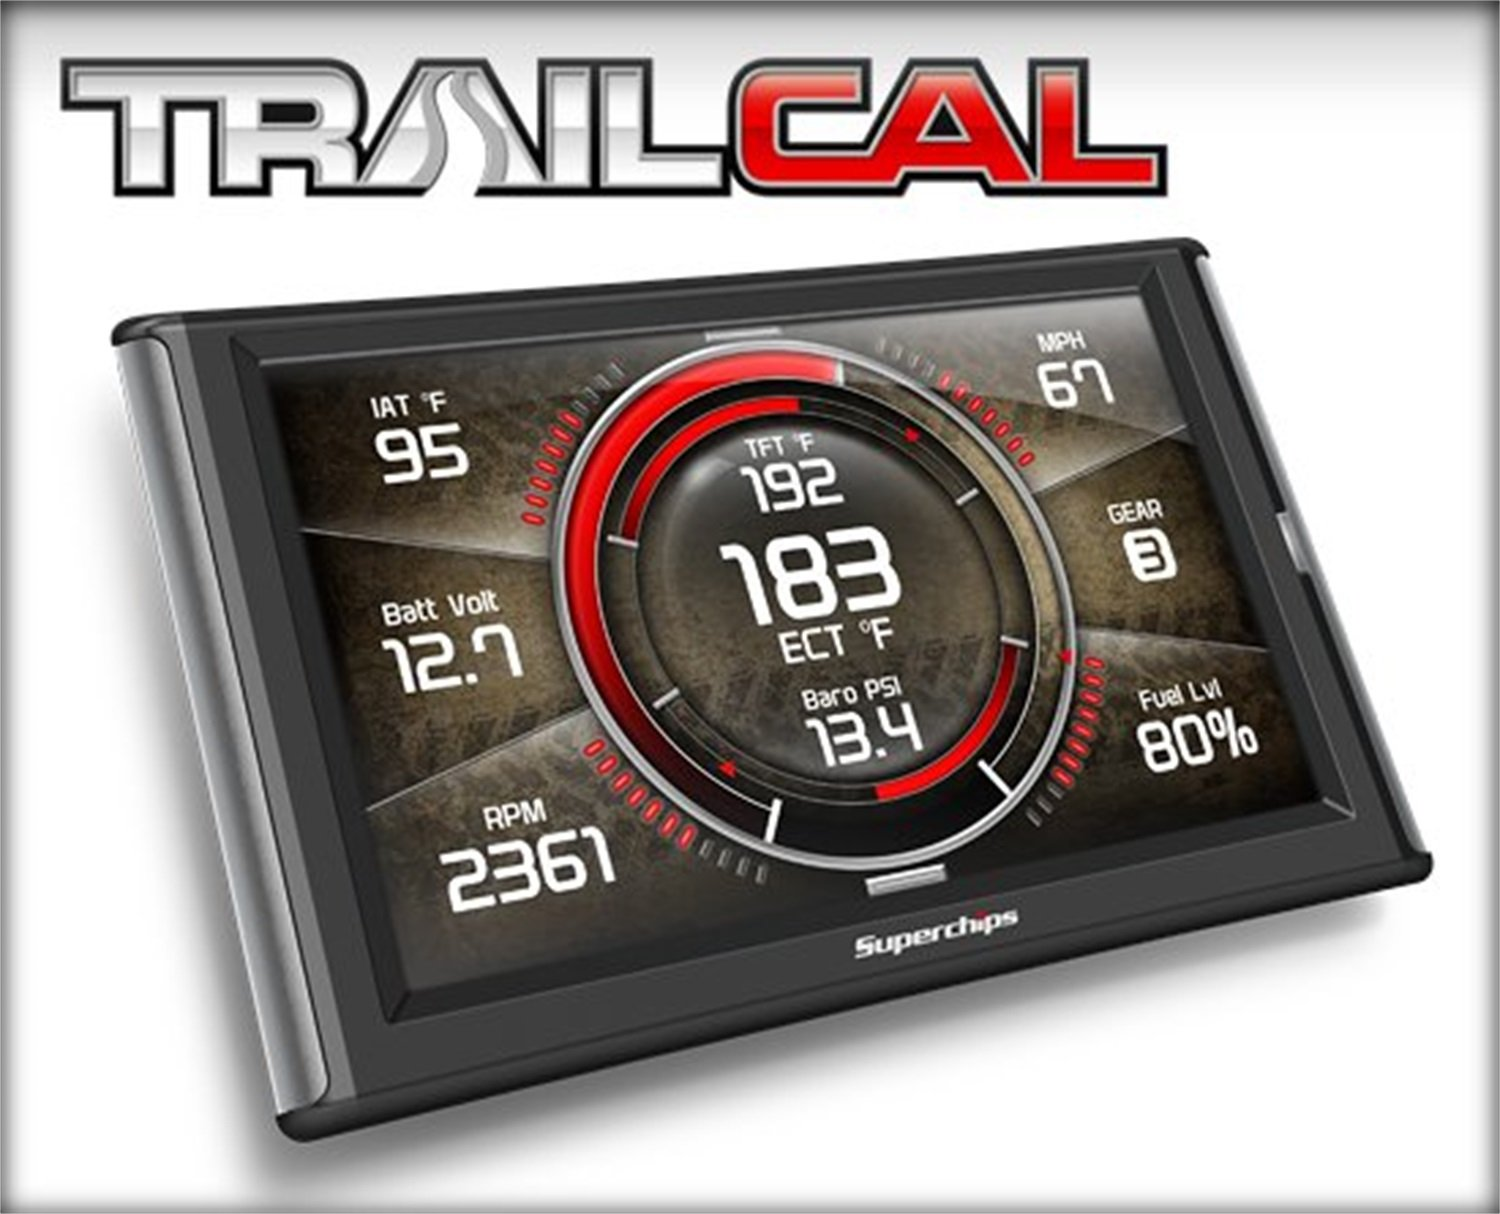 4. Superchips 41051 Trail Cal Tuner for Jeep JK